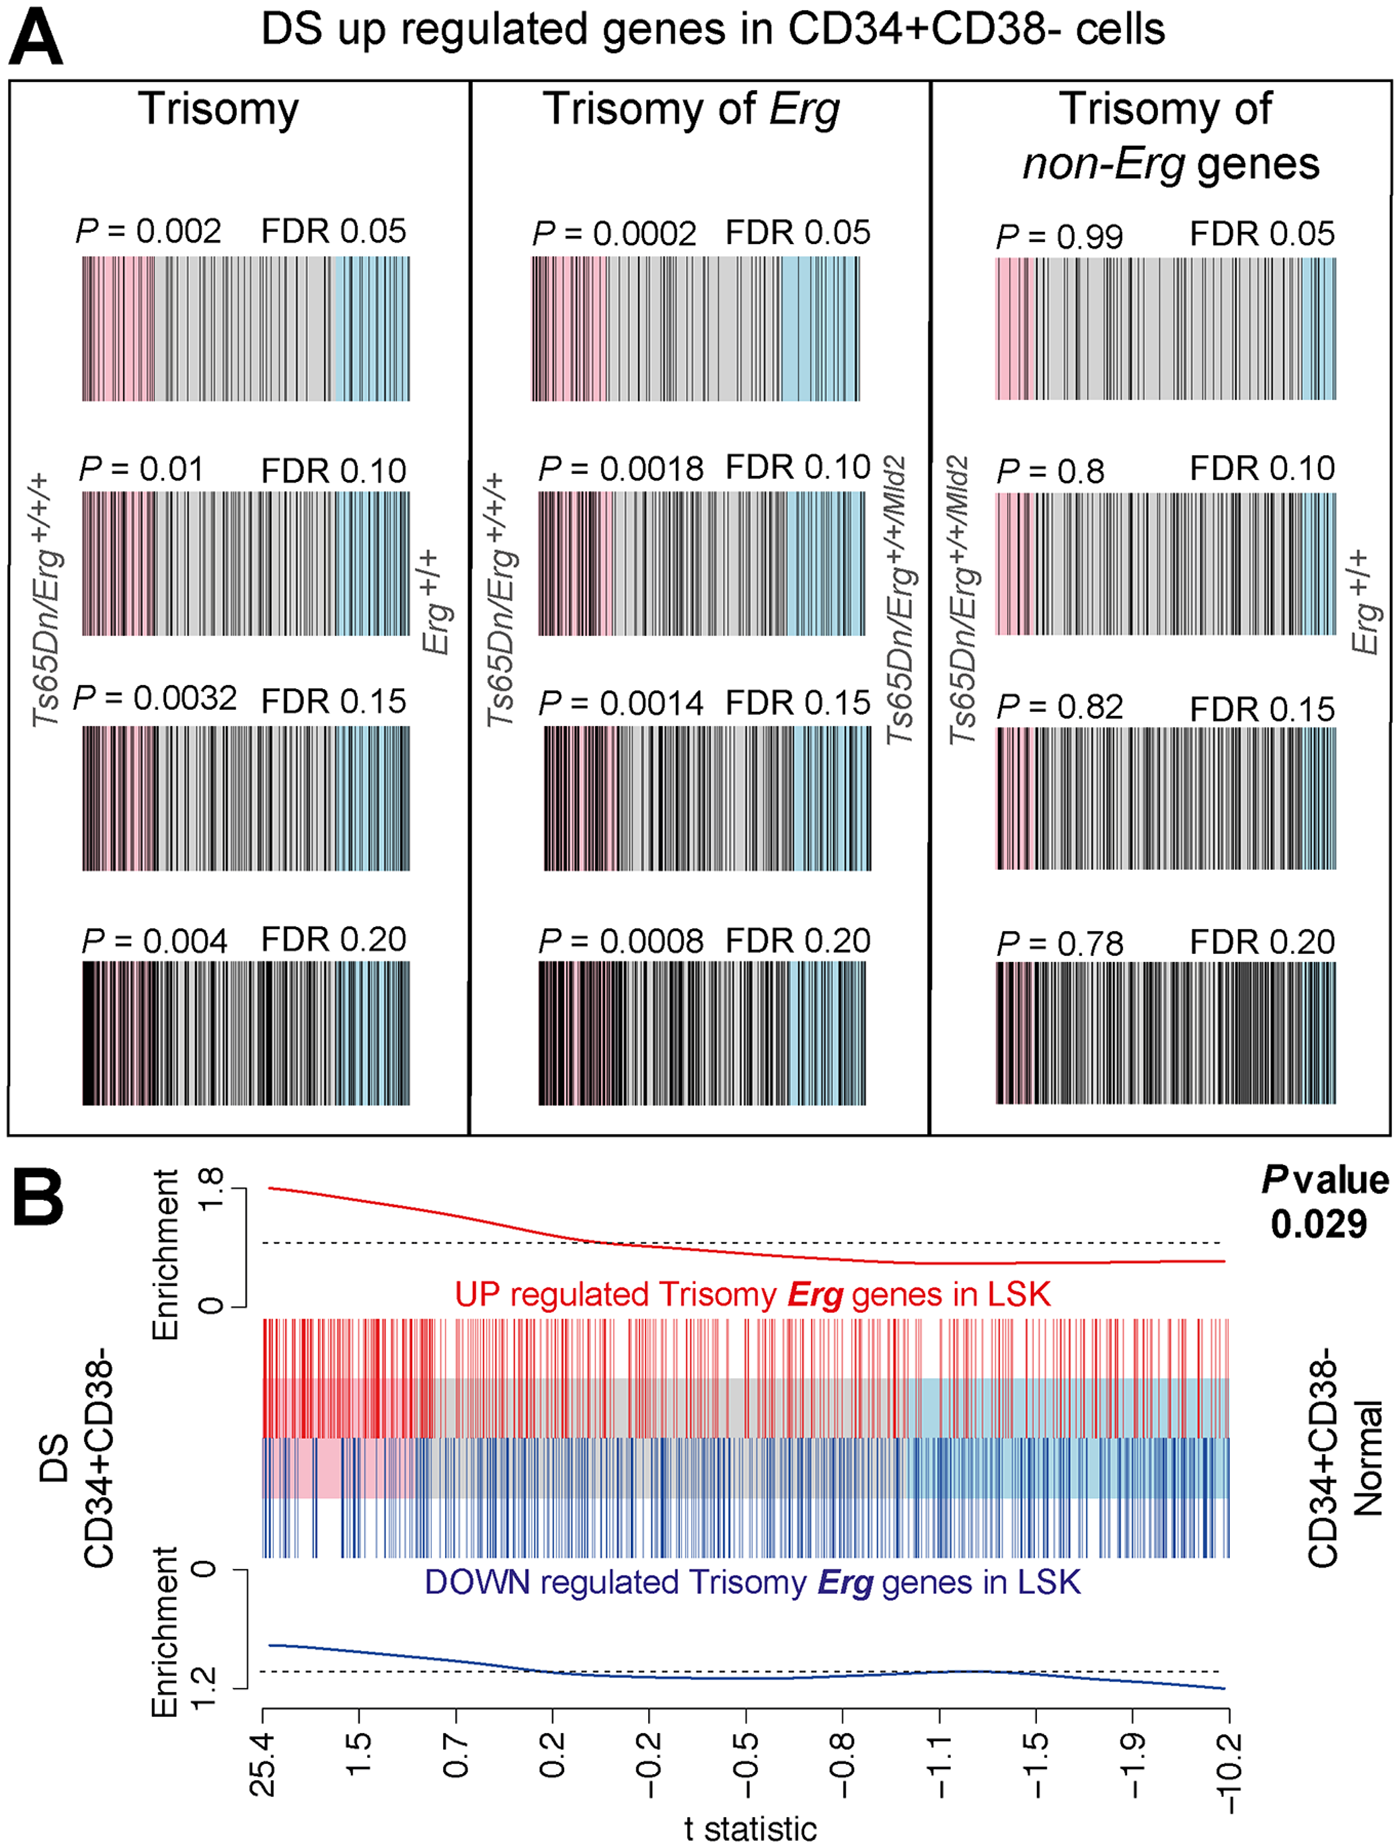 Human DS Lin<sup>-</sup>CD34<sup>+</sup>CD38<sup>-</sup> HSPC gene expression changes correlate with changes due to trisomy of <i>Erg</i> in Ts(17<sup>16</sup>)65Dn LSK cells.